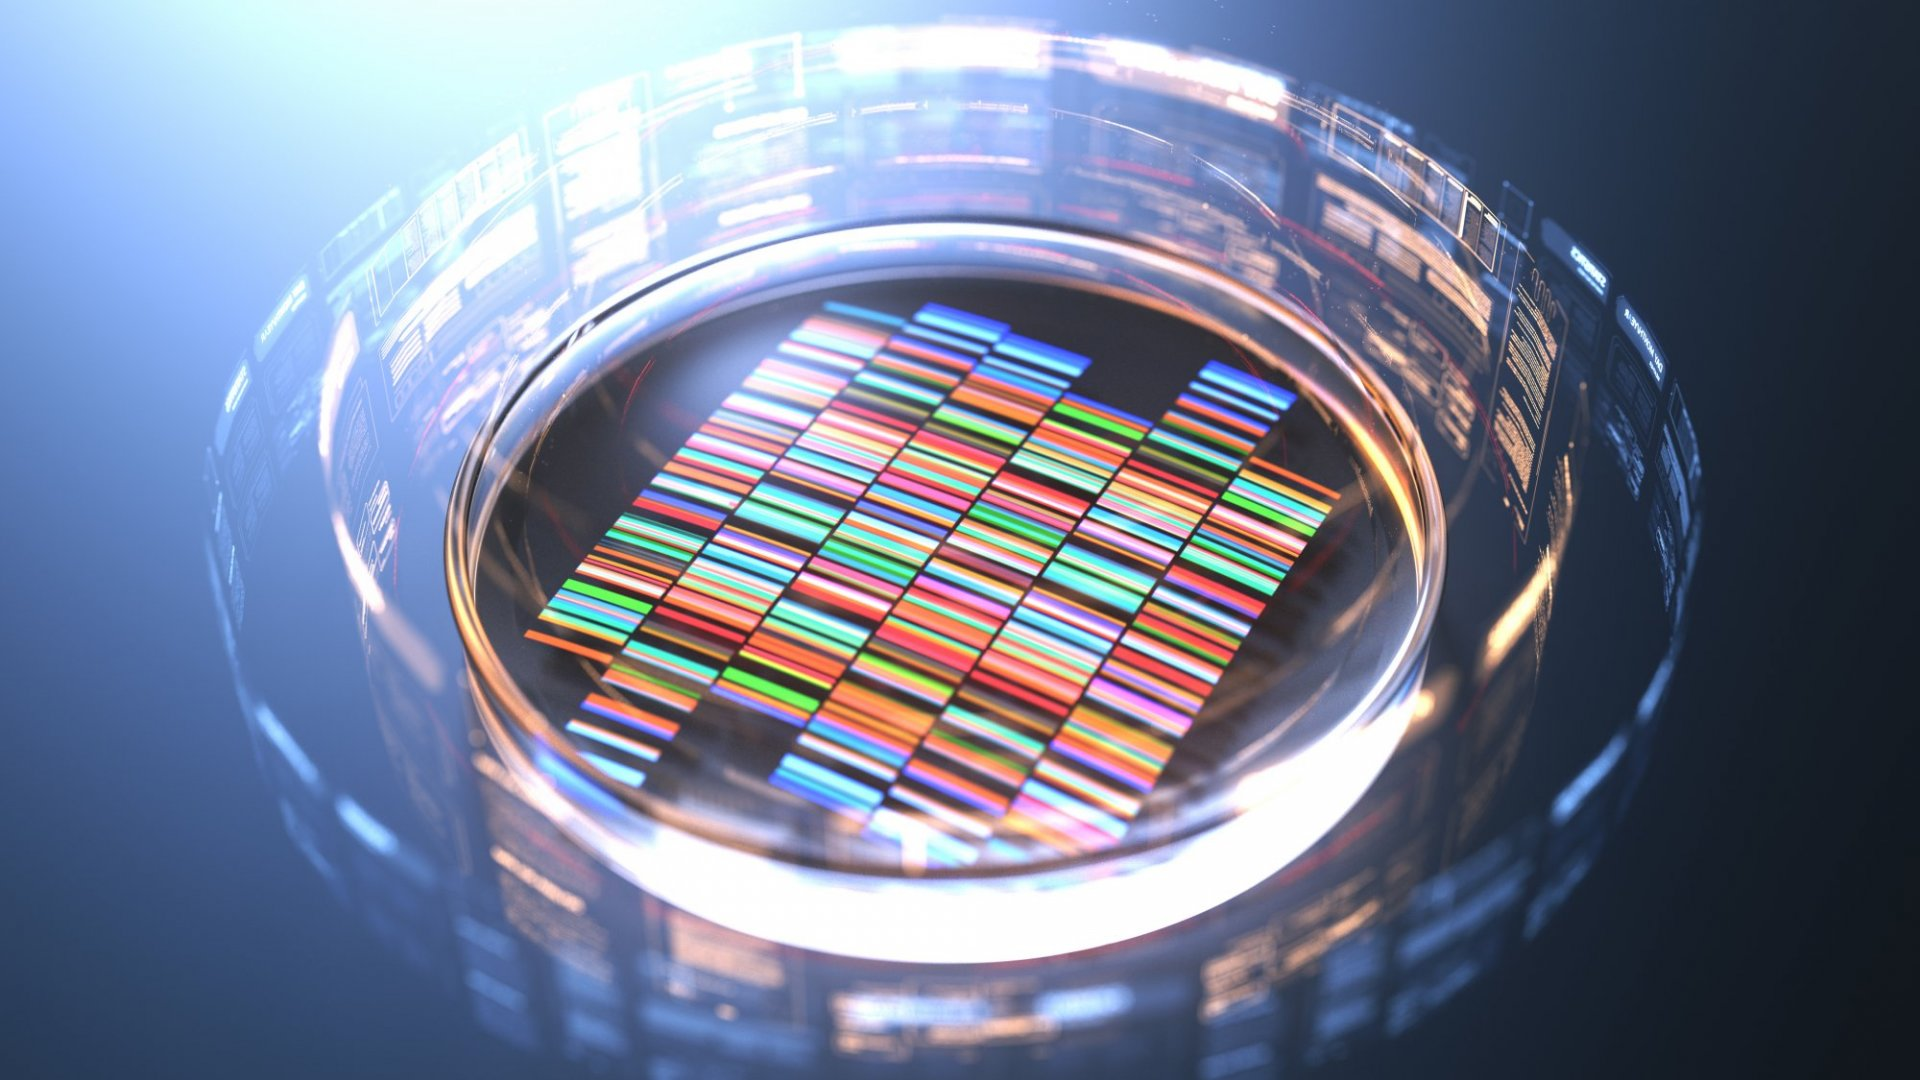 If Hacking DNA Frightens You, This Will Terrify You